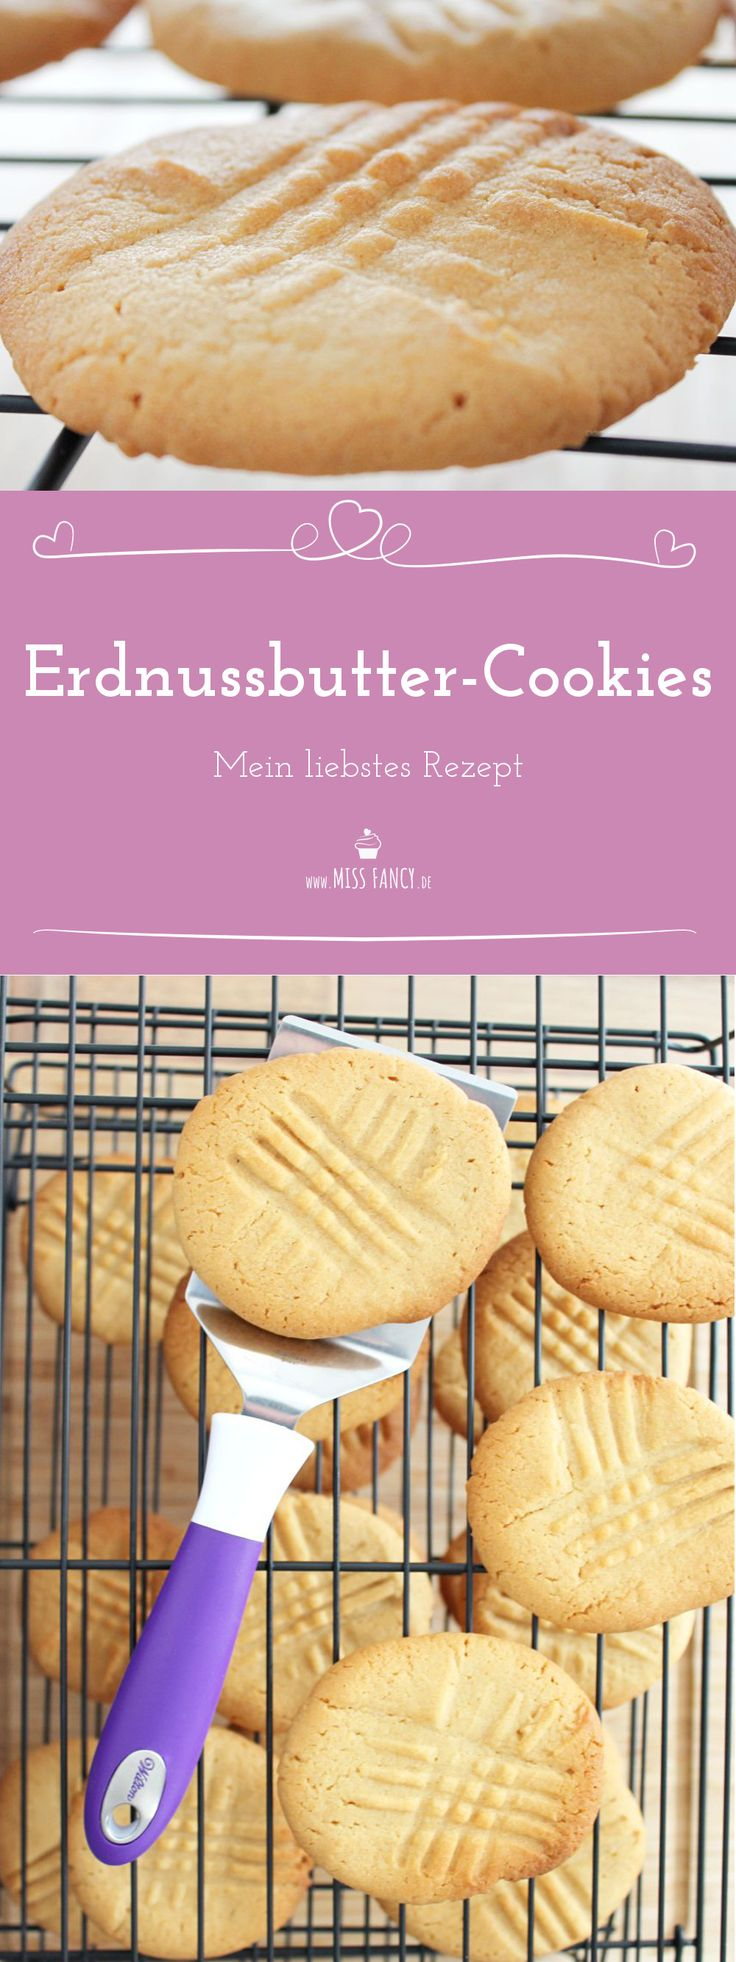 Leckere Peanutbutter-Cookies :-)